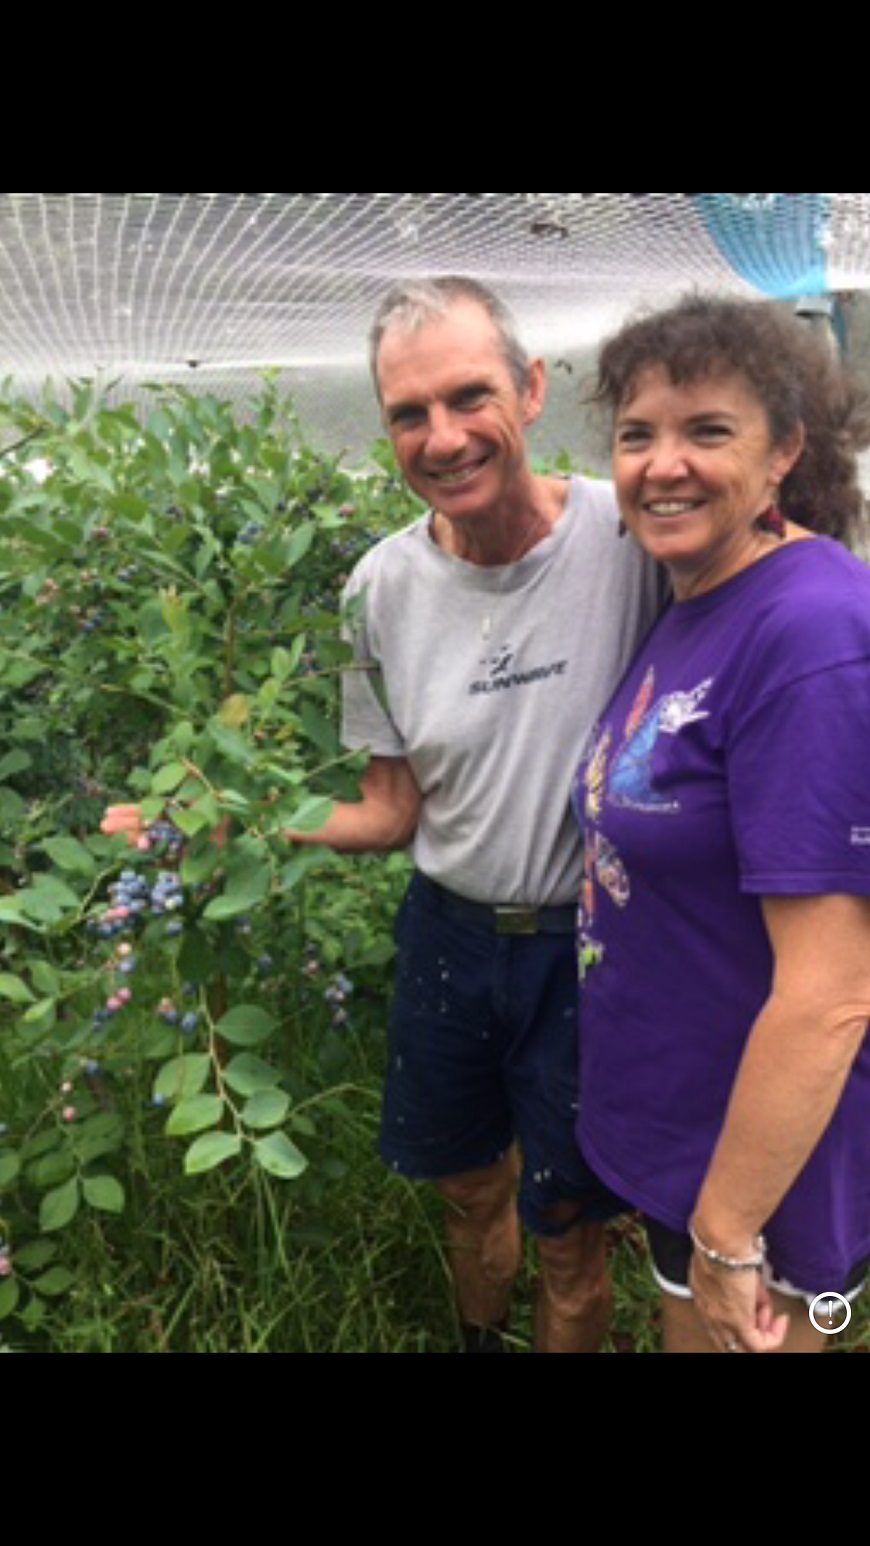 David and Tracey Pass, owners of Bobs Farm Berries.